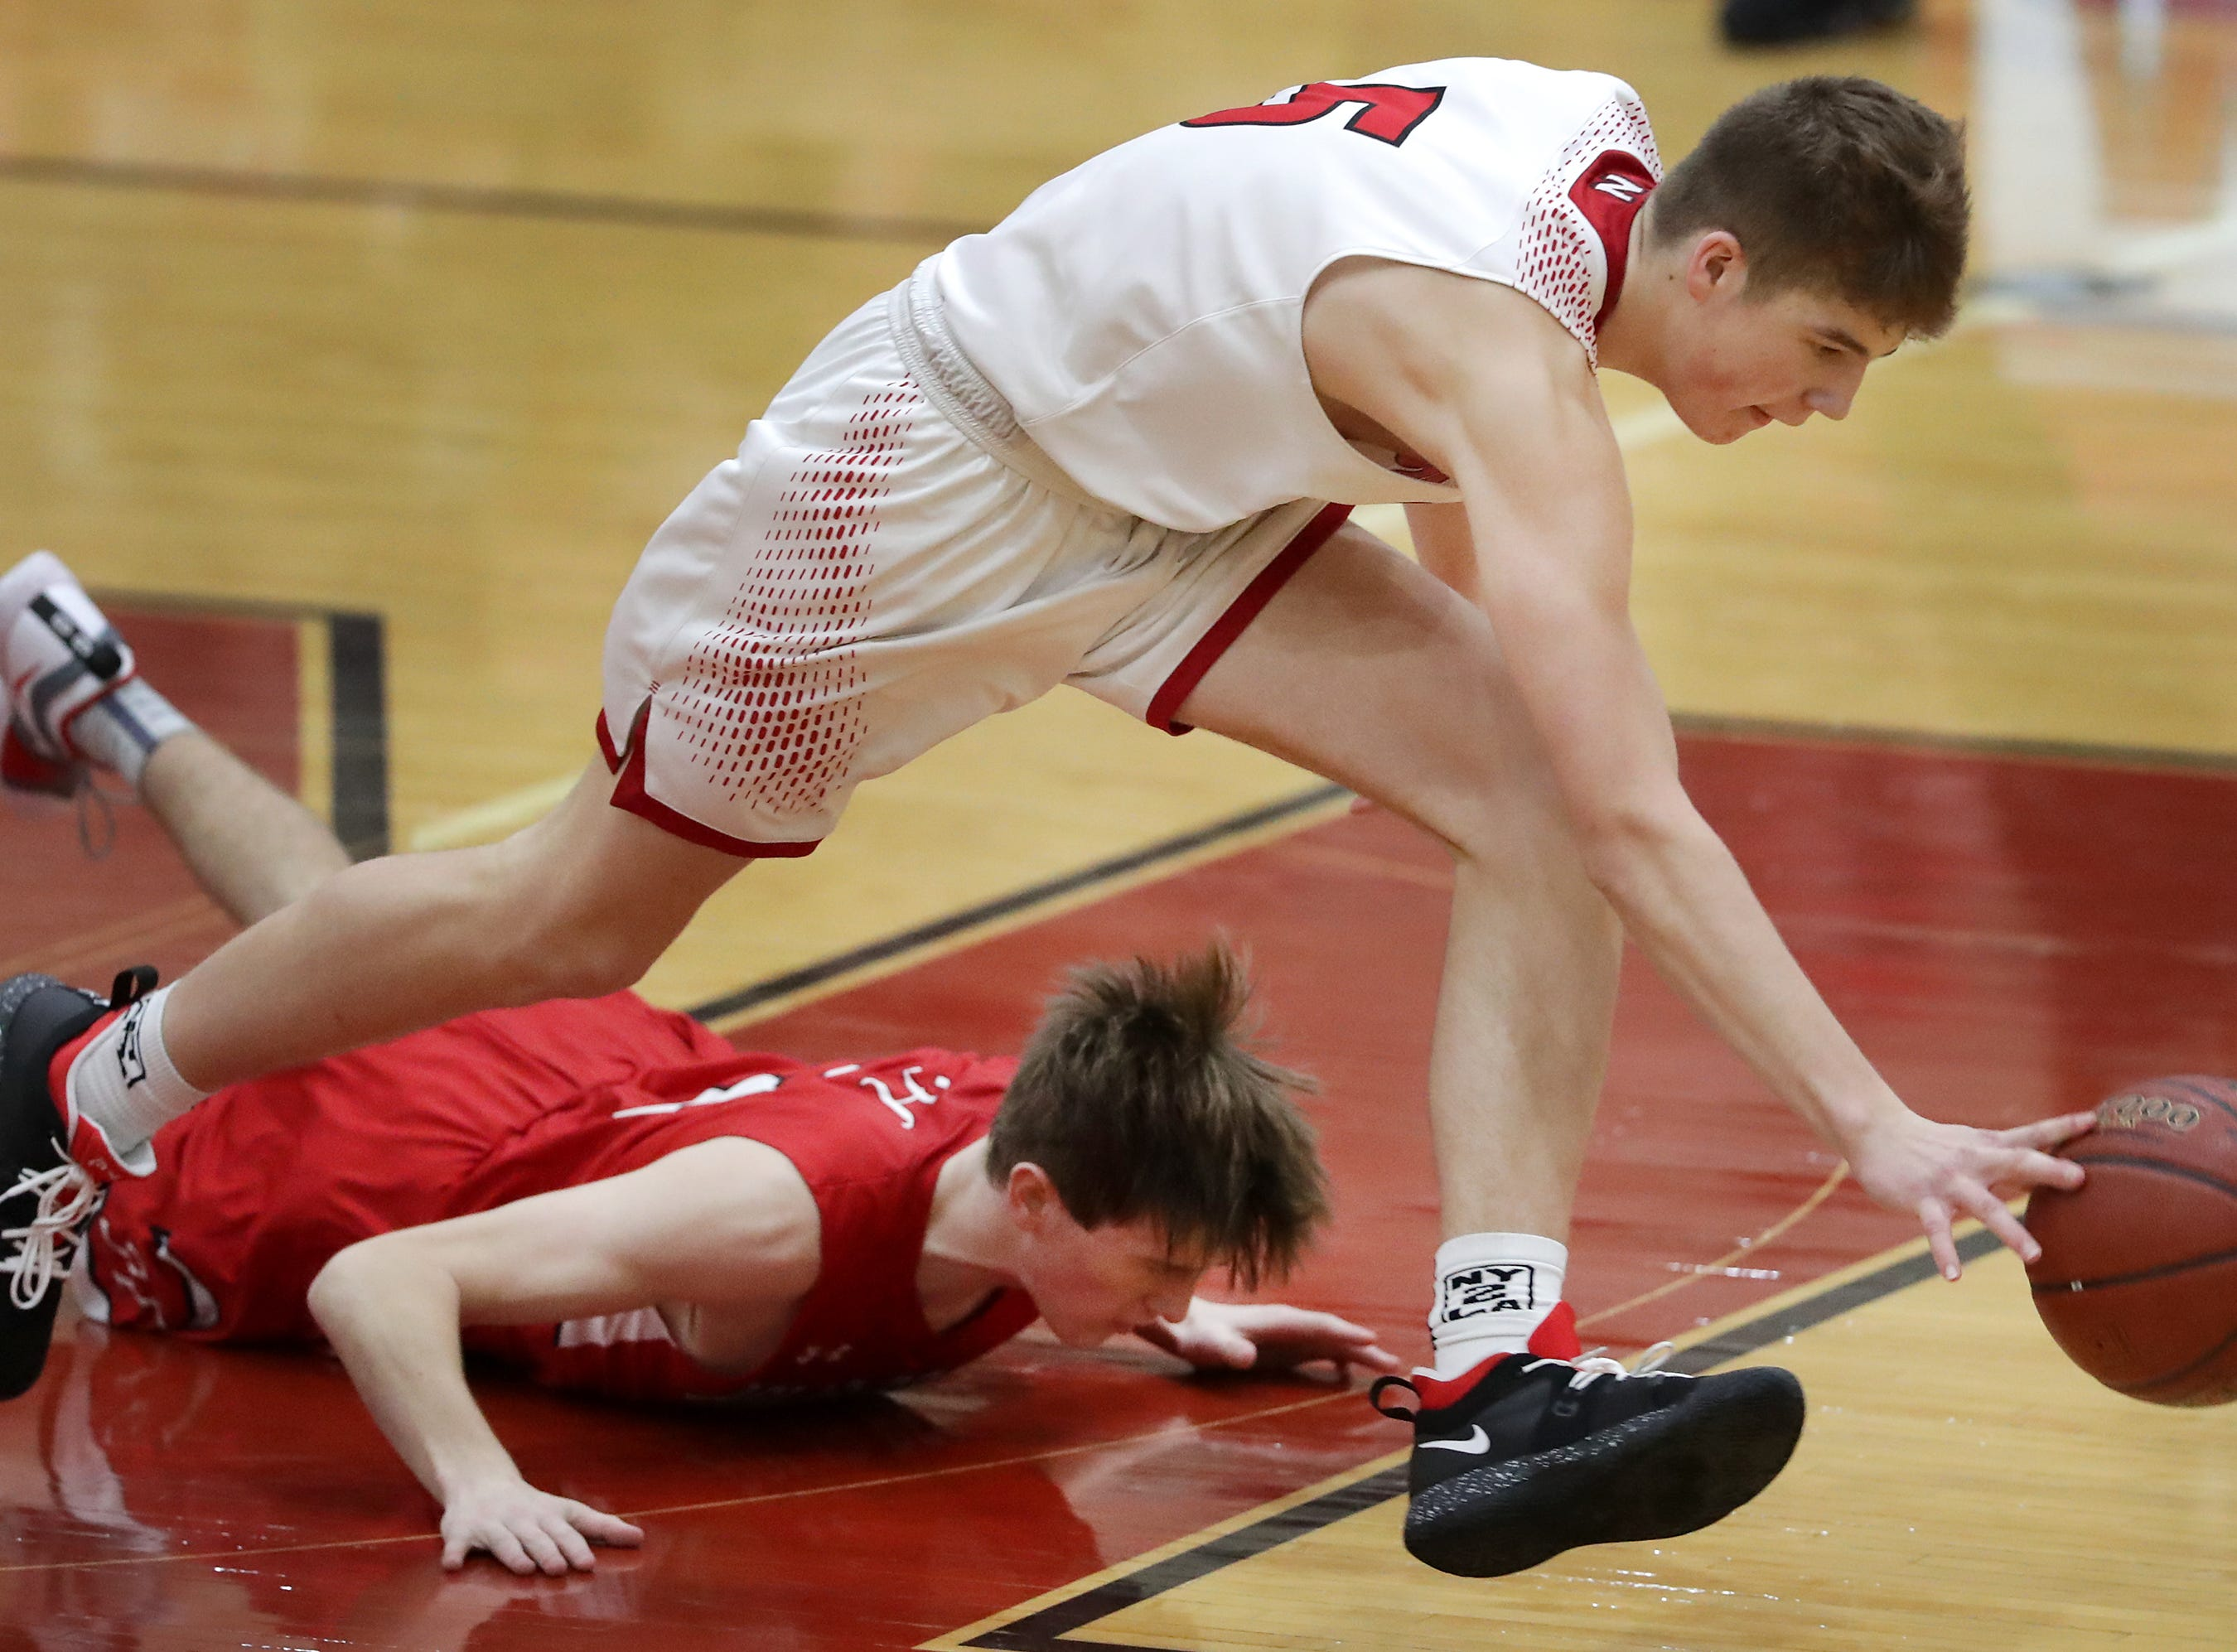 Neenah High School's #5 Max Klesmit against Hortonville High School's #2 Parker Lawrence during their Fox Valley Association boys basketball game on Friday, November 30, 2018, in Neenah, Wis. Neenah defeated Hortonville 71 to 67 in overtime.